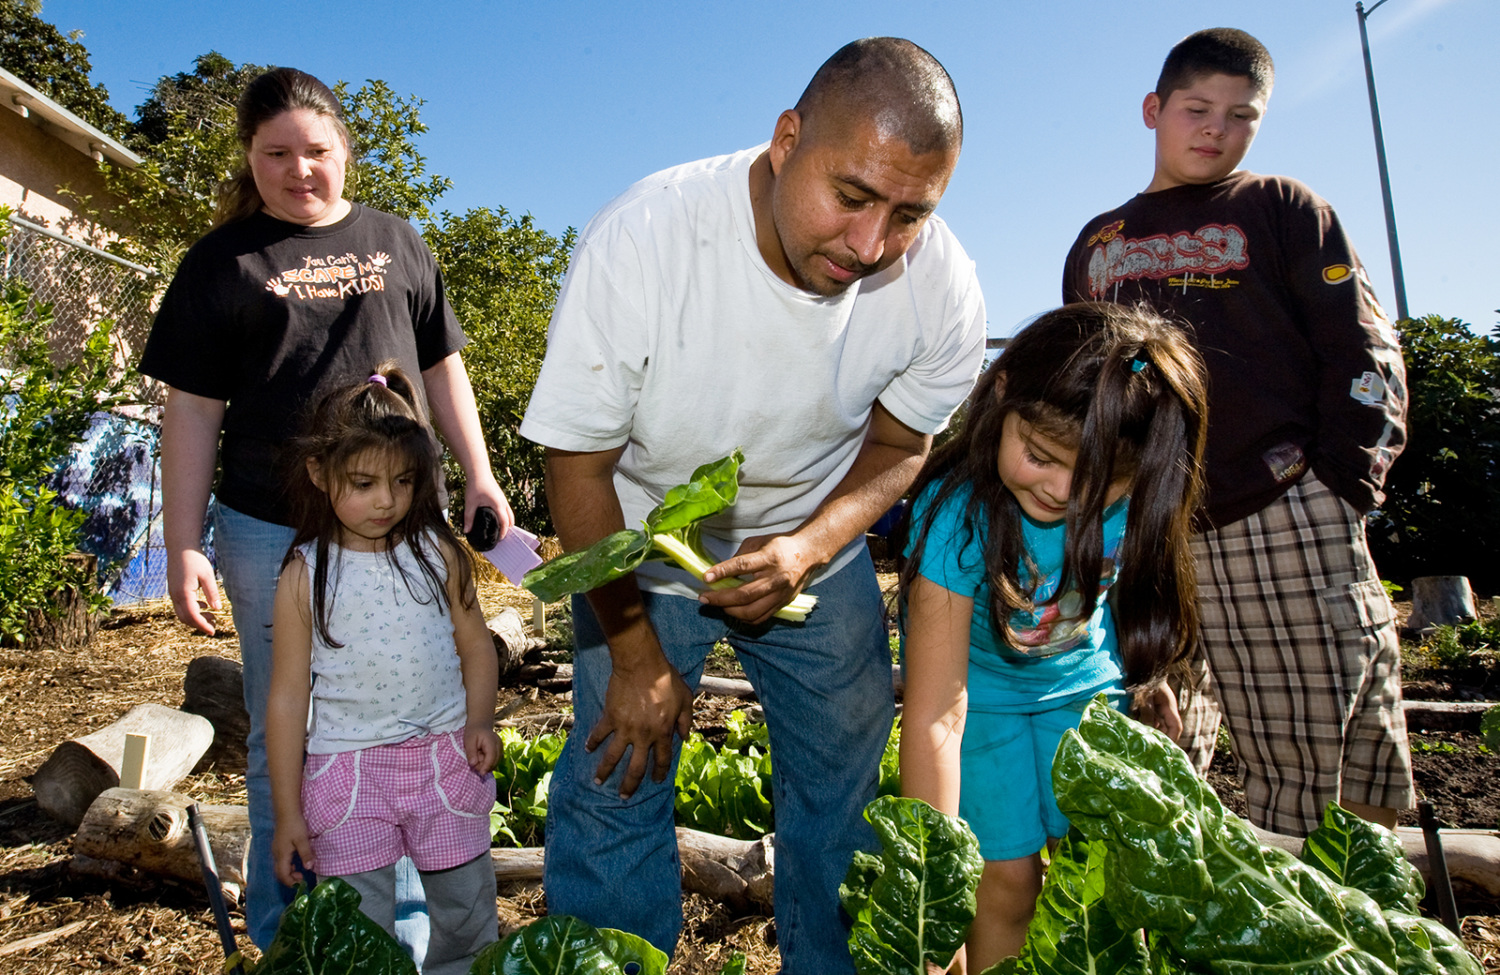 Family in community garden